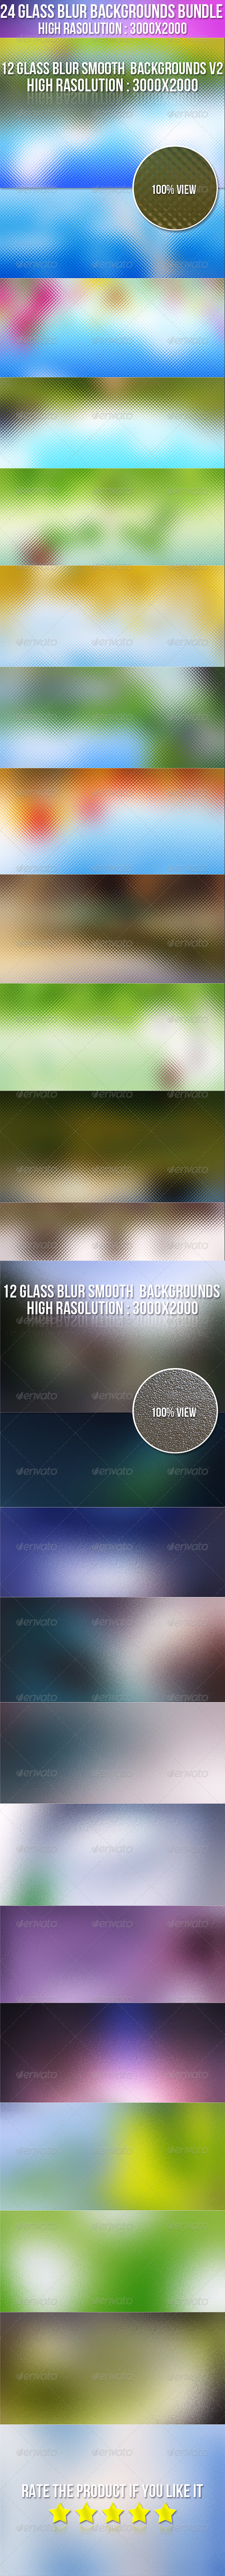 GraphicRiver 24 Glass Smooth Blur Background Bundle 6916566